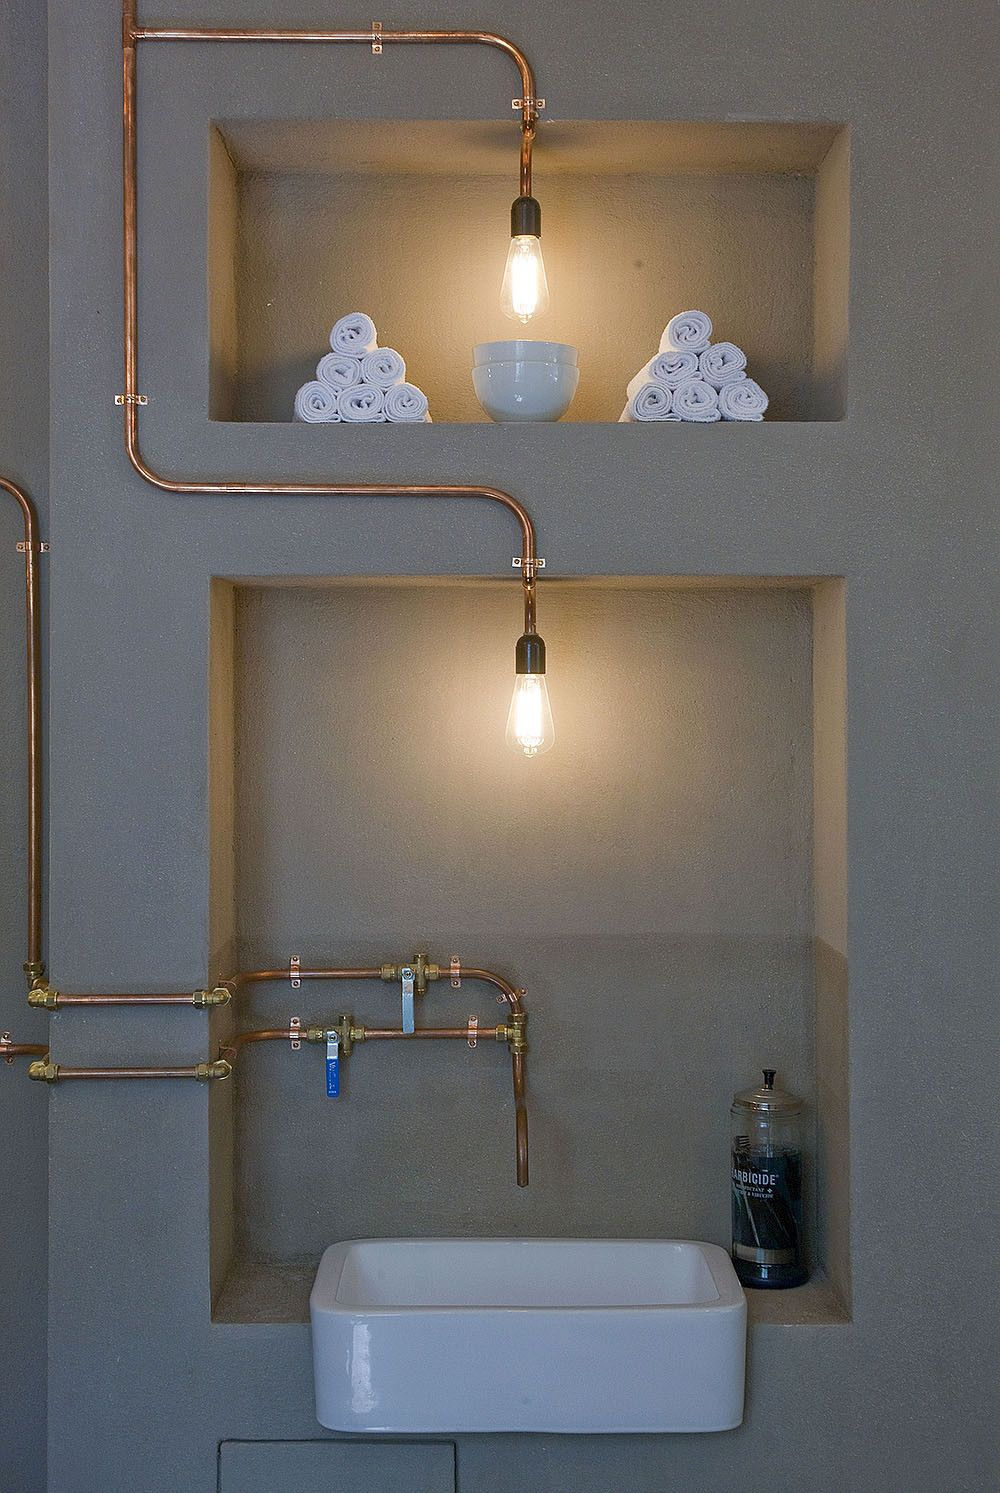 Barber Shops Around The World Reveal Their Understated Luxury House Wiring Metal Conduit Amsterdam Shop By Ard Hoksbergen Copper Pipes